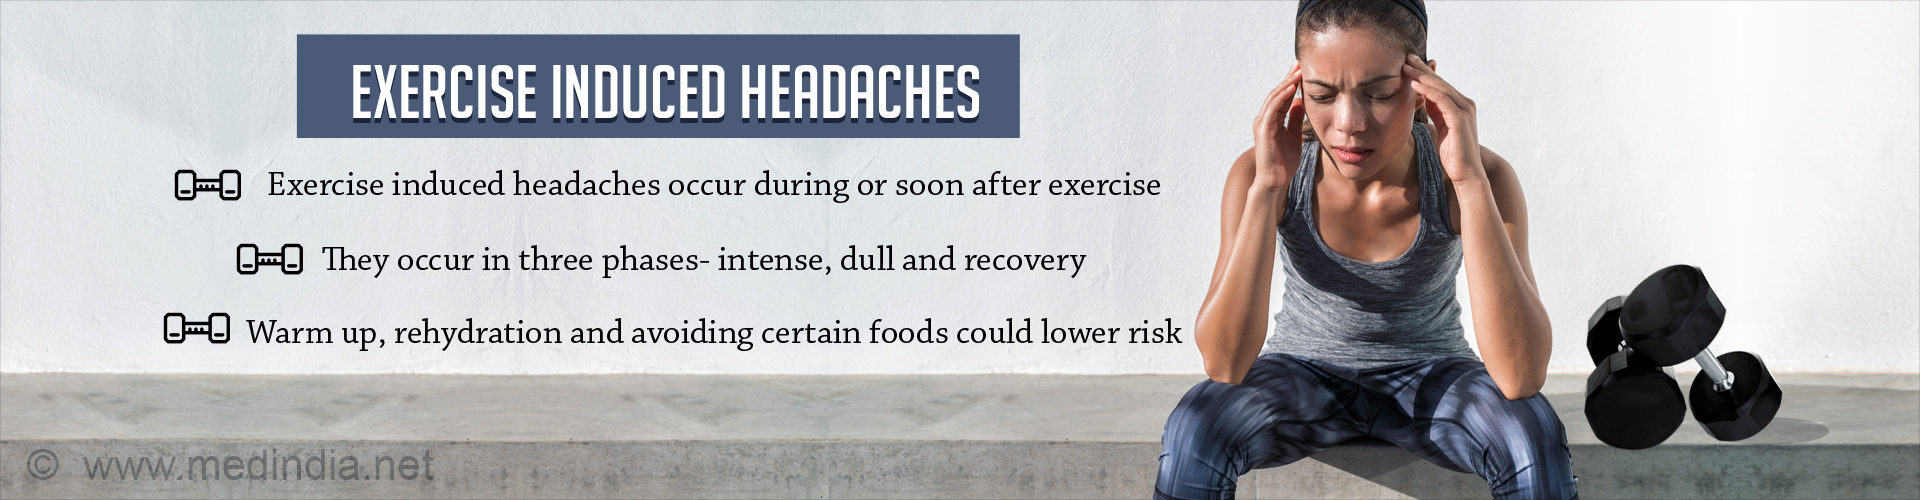 Exercise Induced Headaches - Prevention and Management